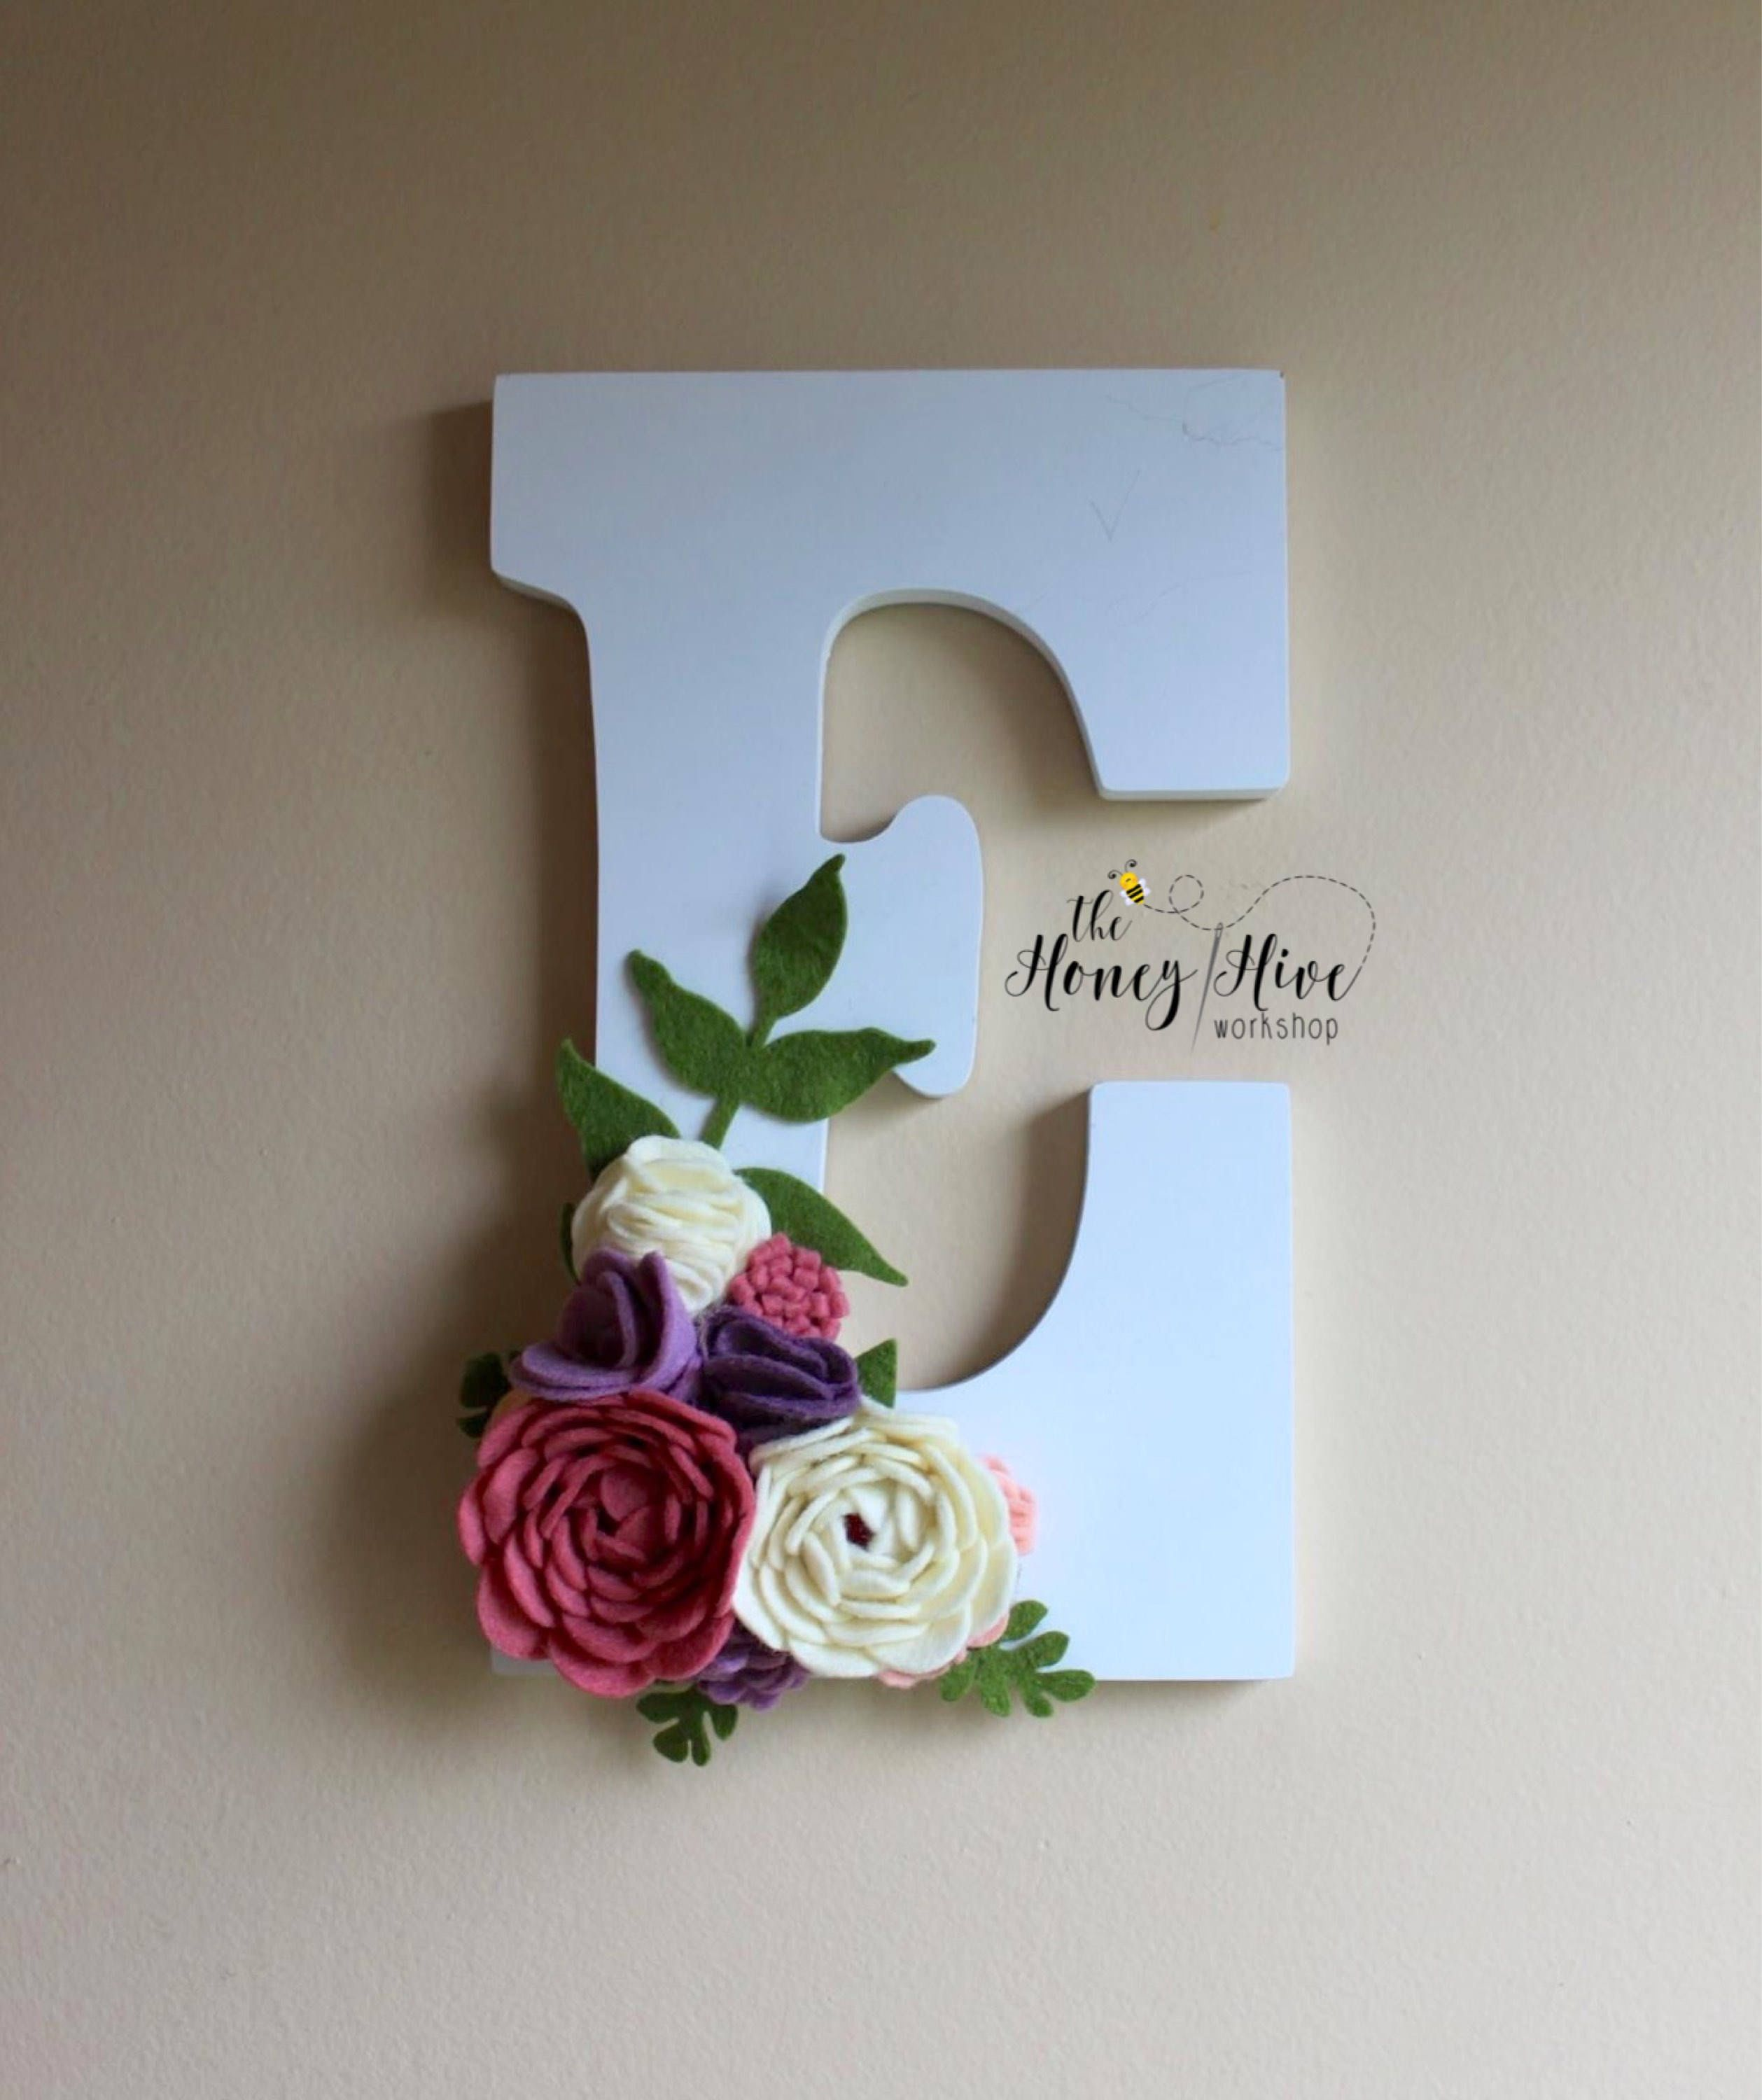 easy l hangers advice plates hanging for your how holders example picture the decorative decor to larger wall view plate